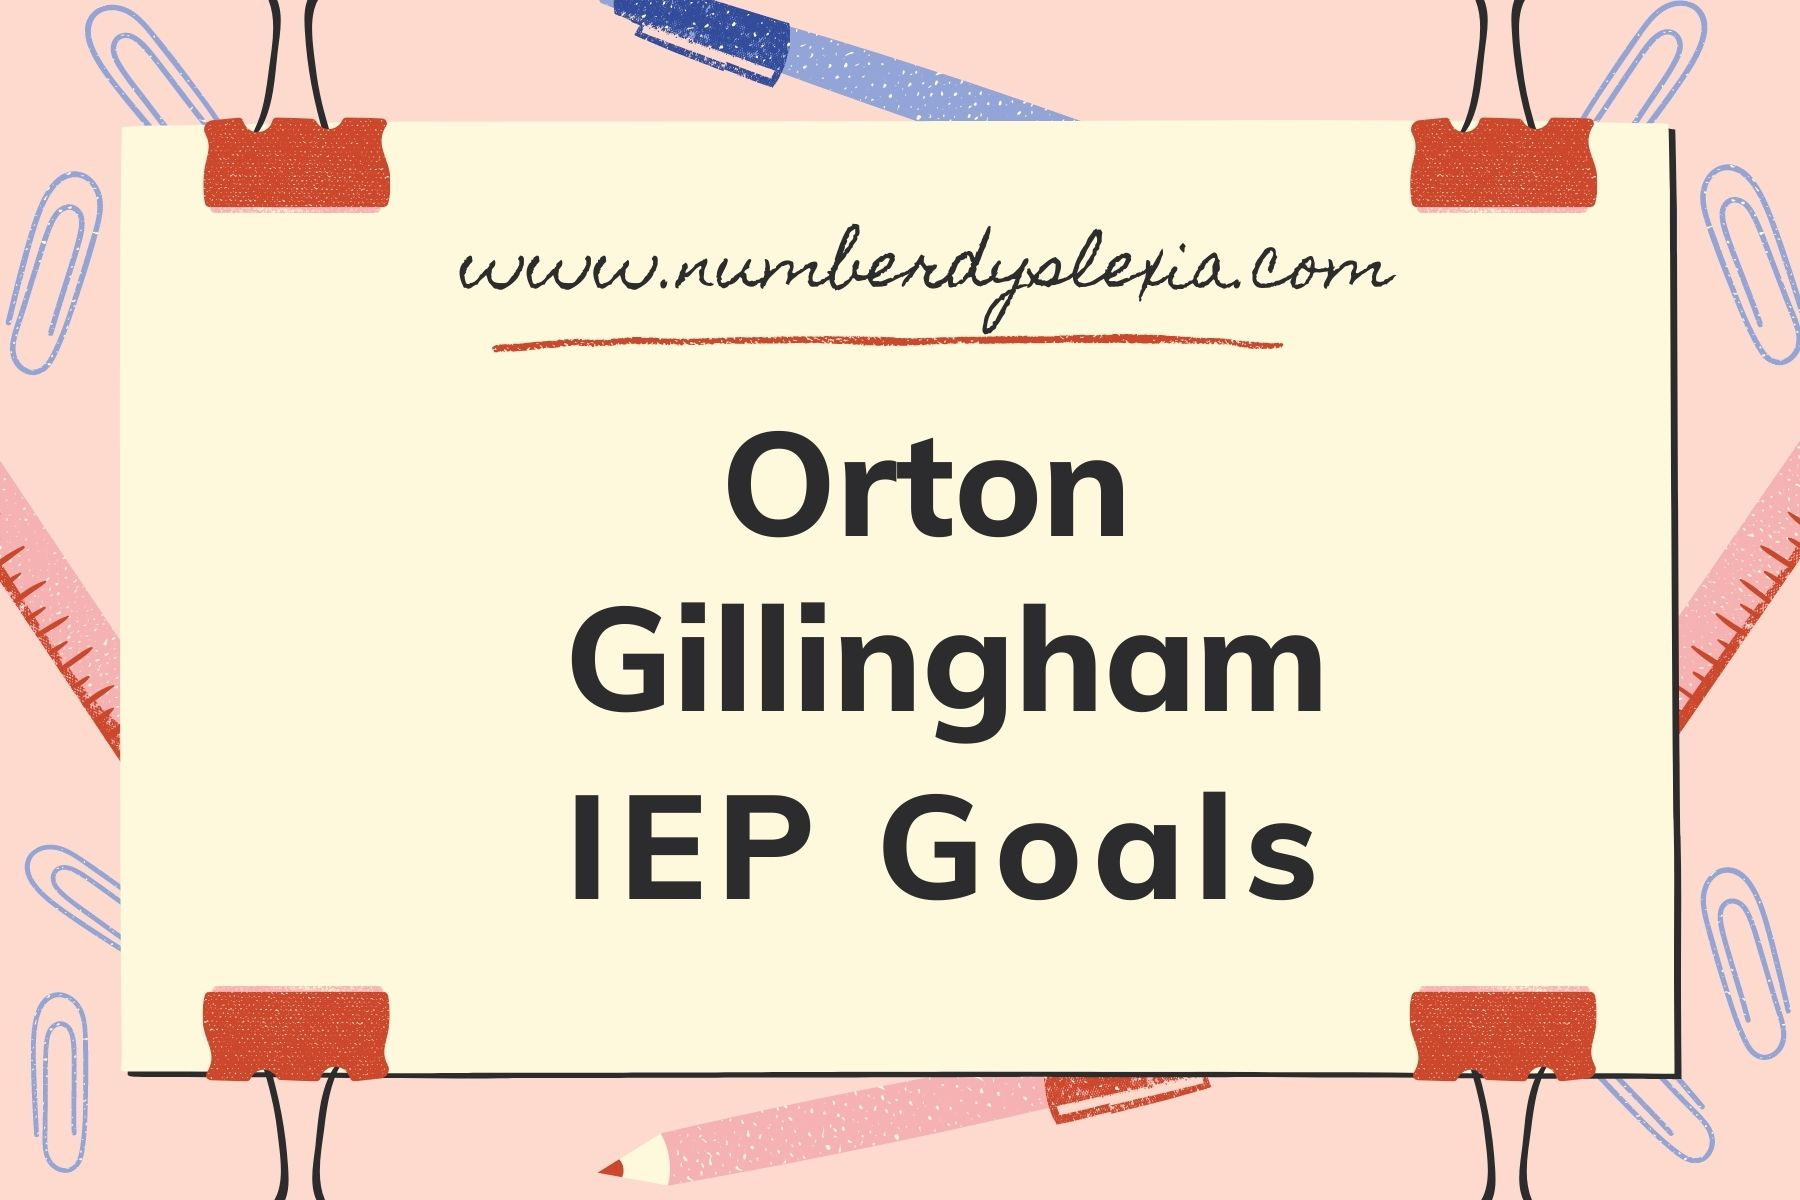 Orton Gillingham IEP Goals - Approach, IEP Goals List, Tools and Challenges